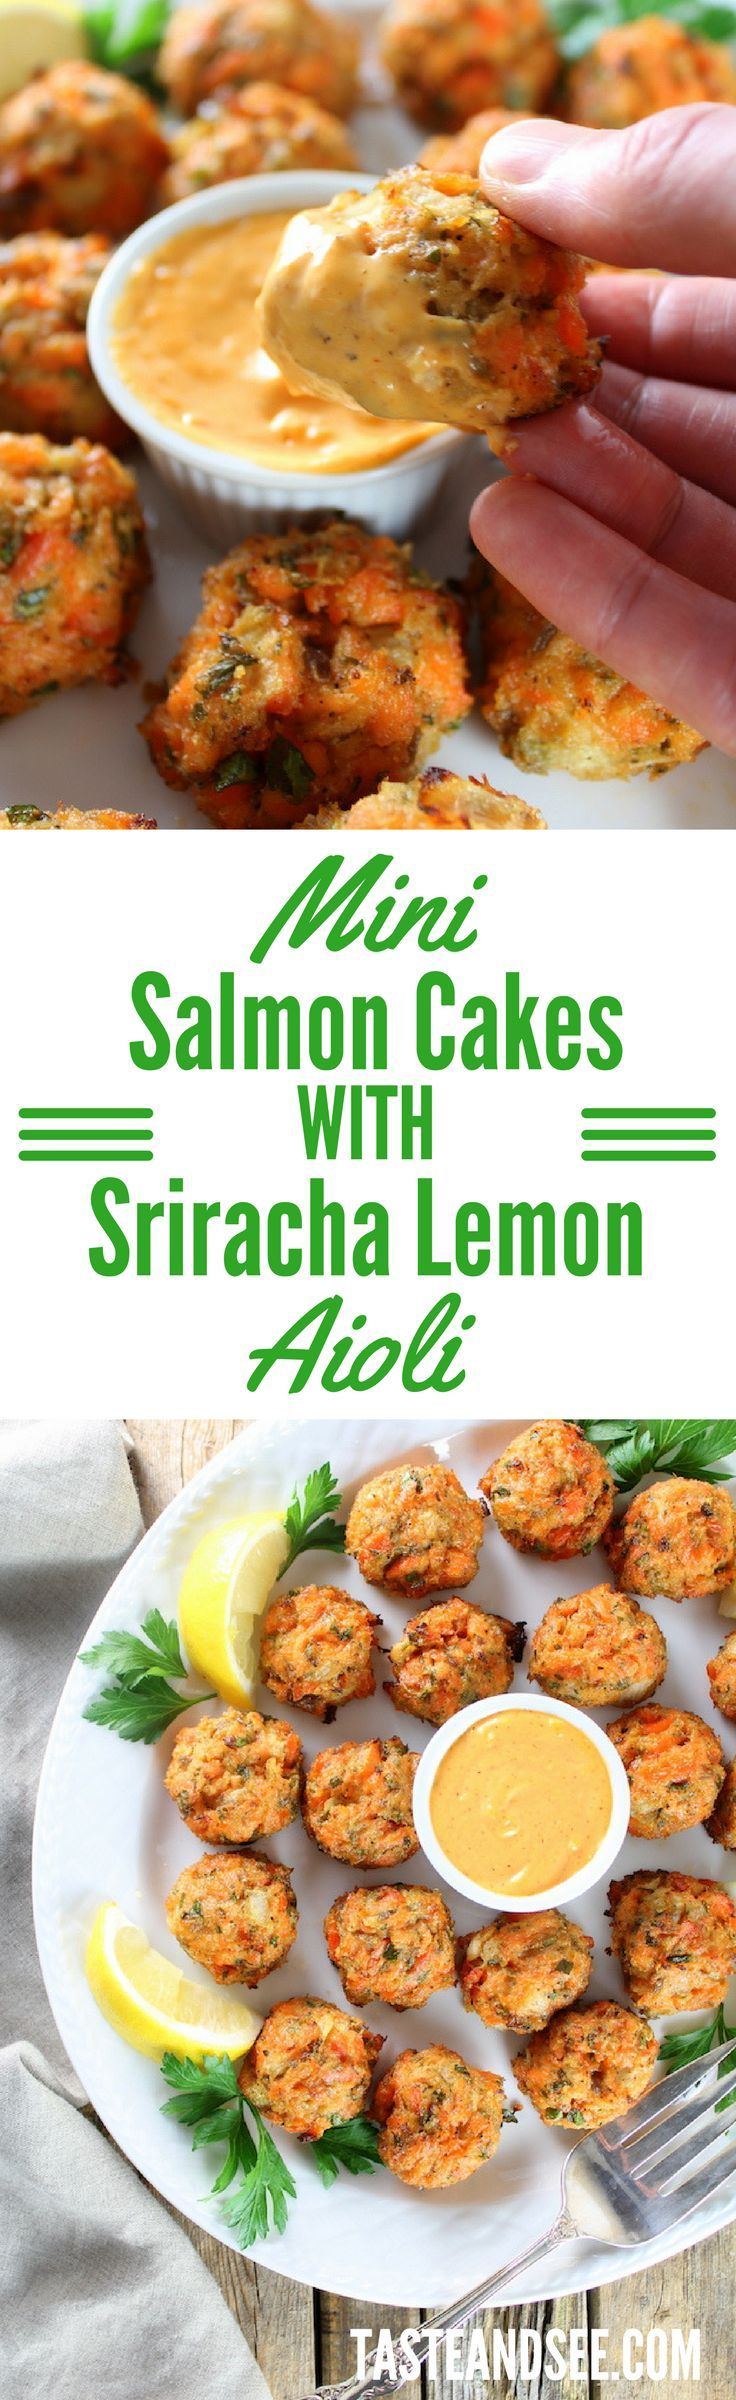 Mini Salmon Cakes with Sriracha Lemon Aioli - the perfect appetizer for holiday entertaining!  http://tasteandsee.com